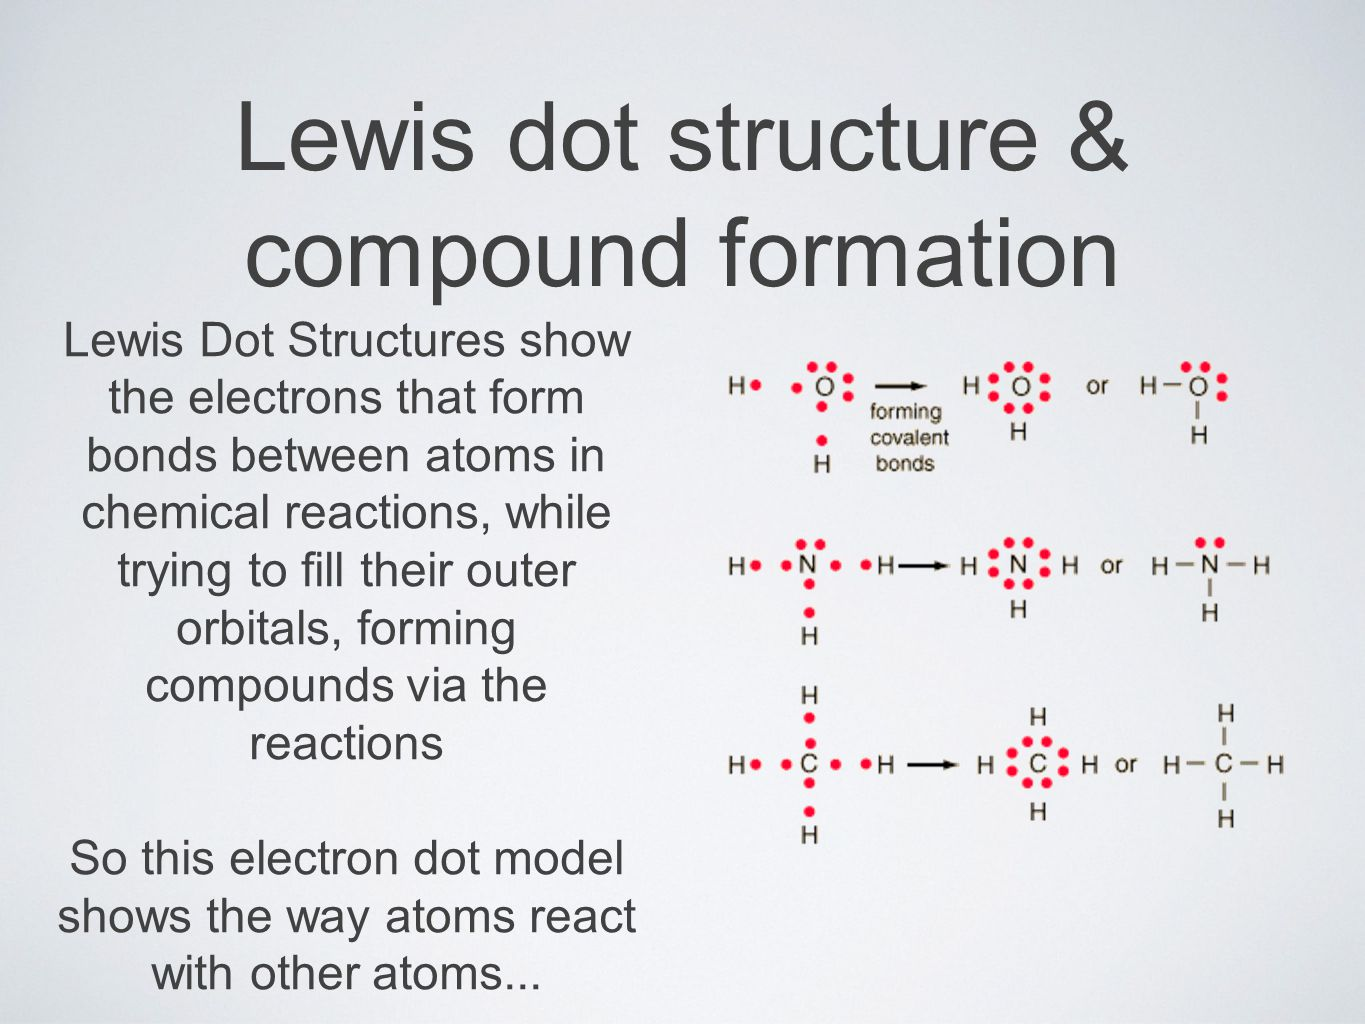 Lewis dot structure & compound formation Lewis Dot Structures show the electrons that form bonds between atoms in chemical reactions, while trying to fill their outer orbitals, forming compounds via the reactions So this electron dot model shows the way atoms react with other atoms...